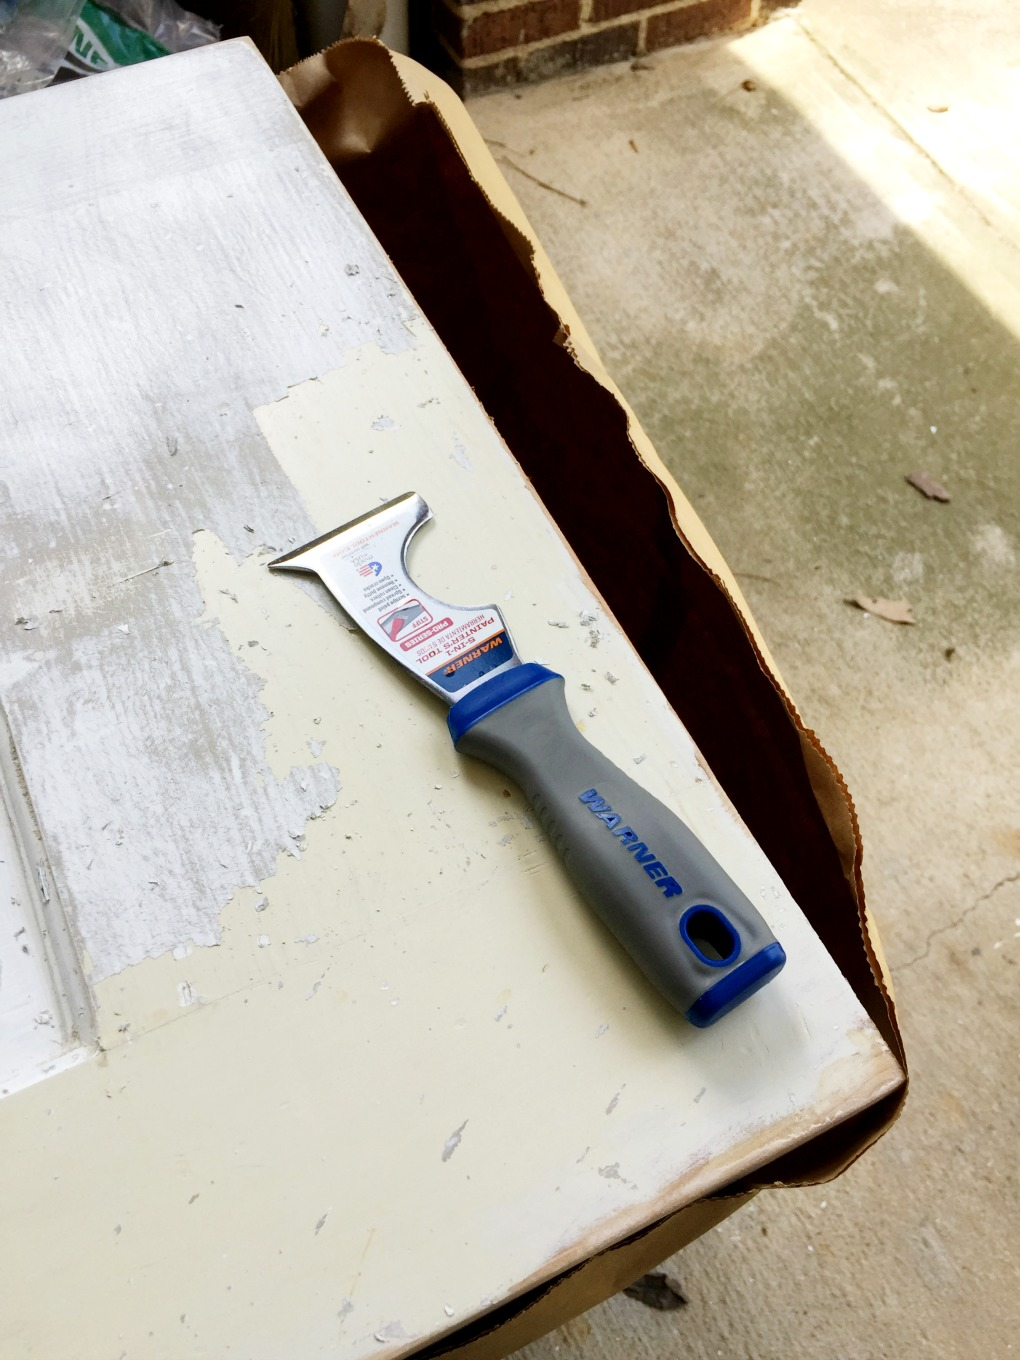 Use 5 in 1 tool to remove paint once the stripper loosens it to strip paint off wood doors - thediybungalow.com